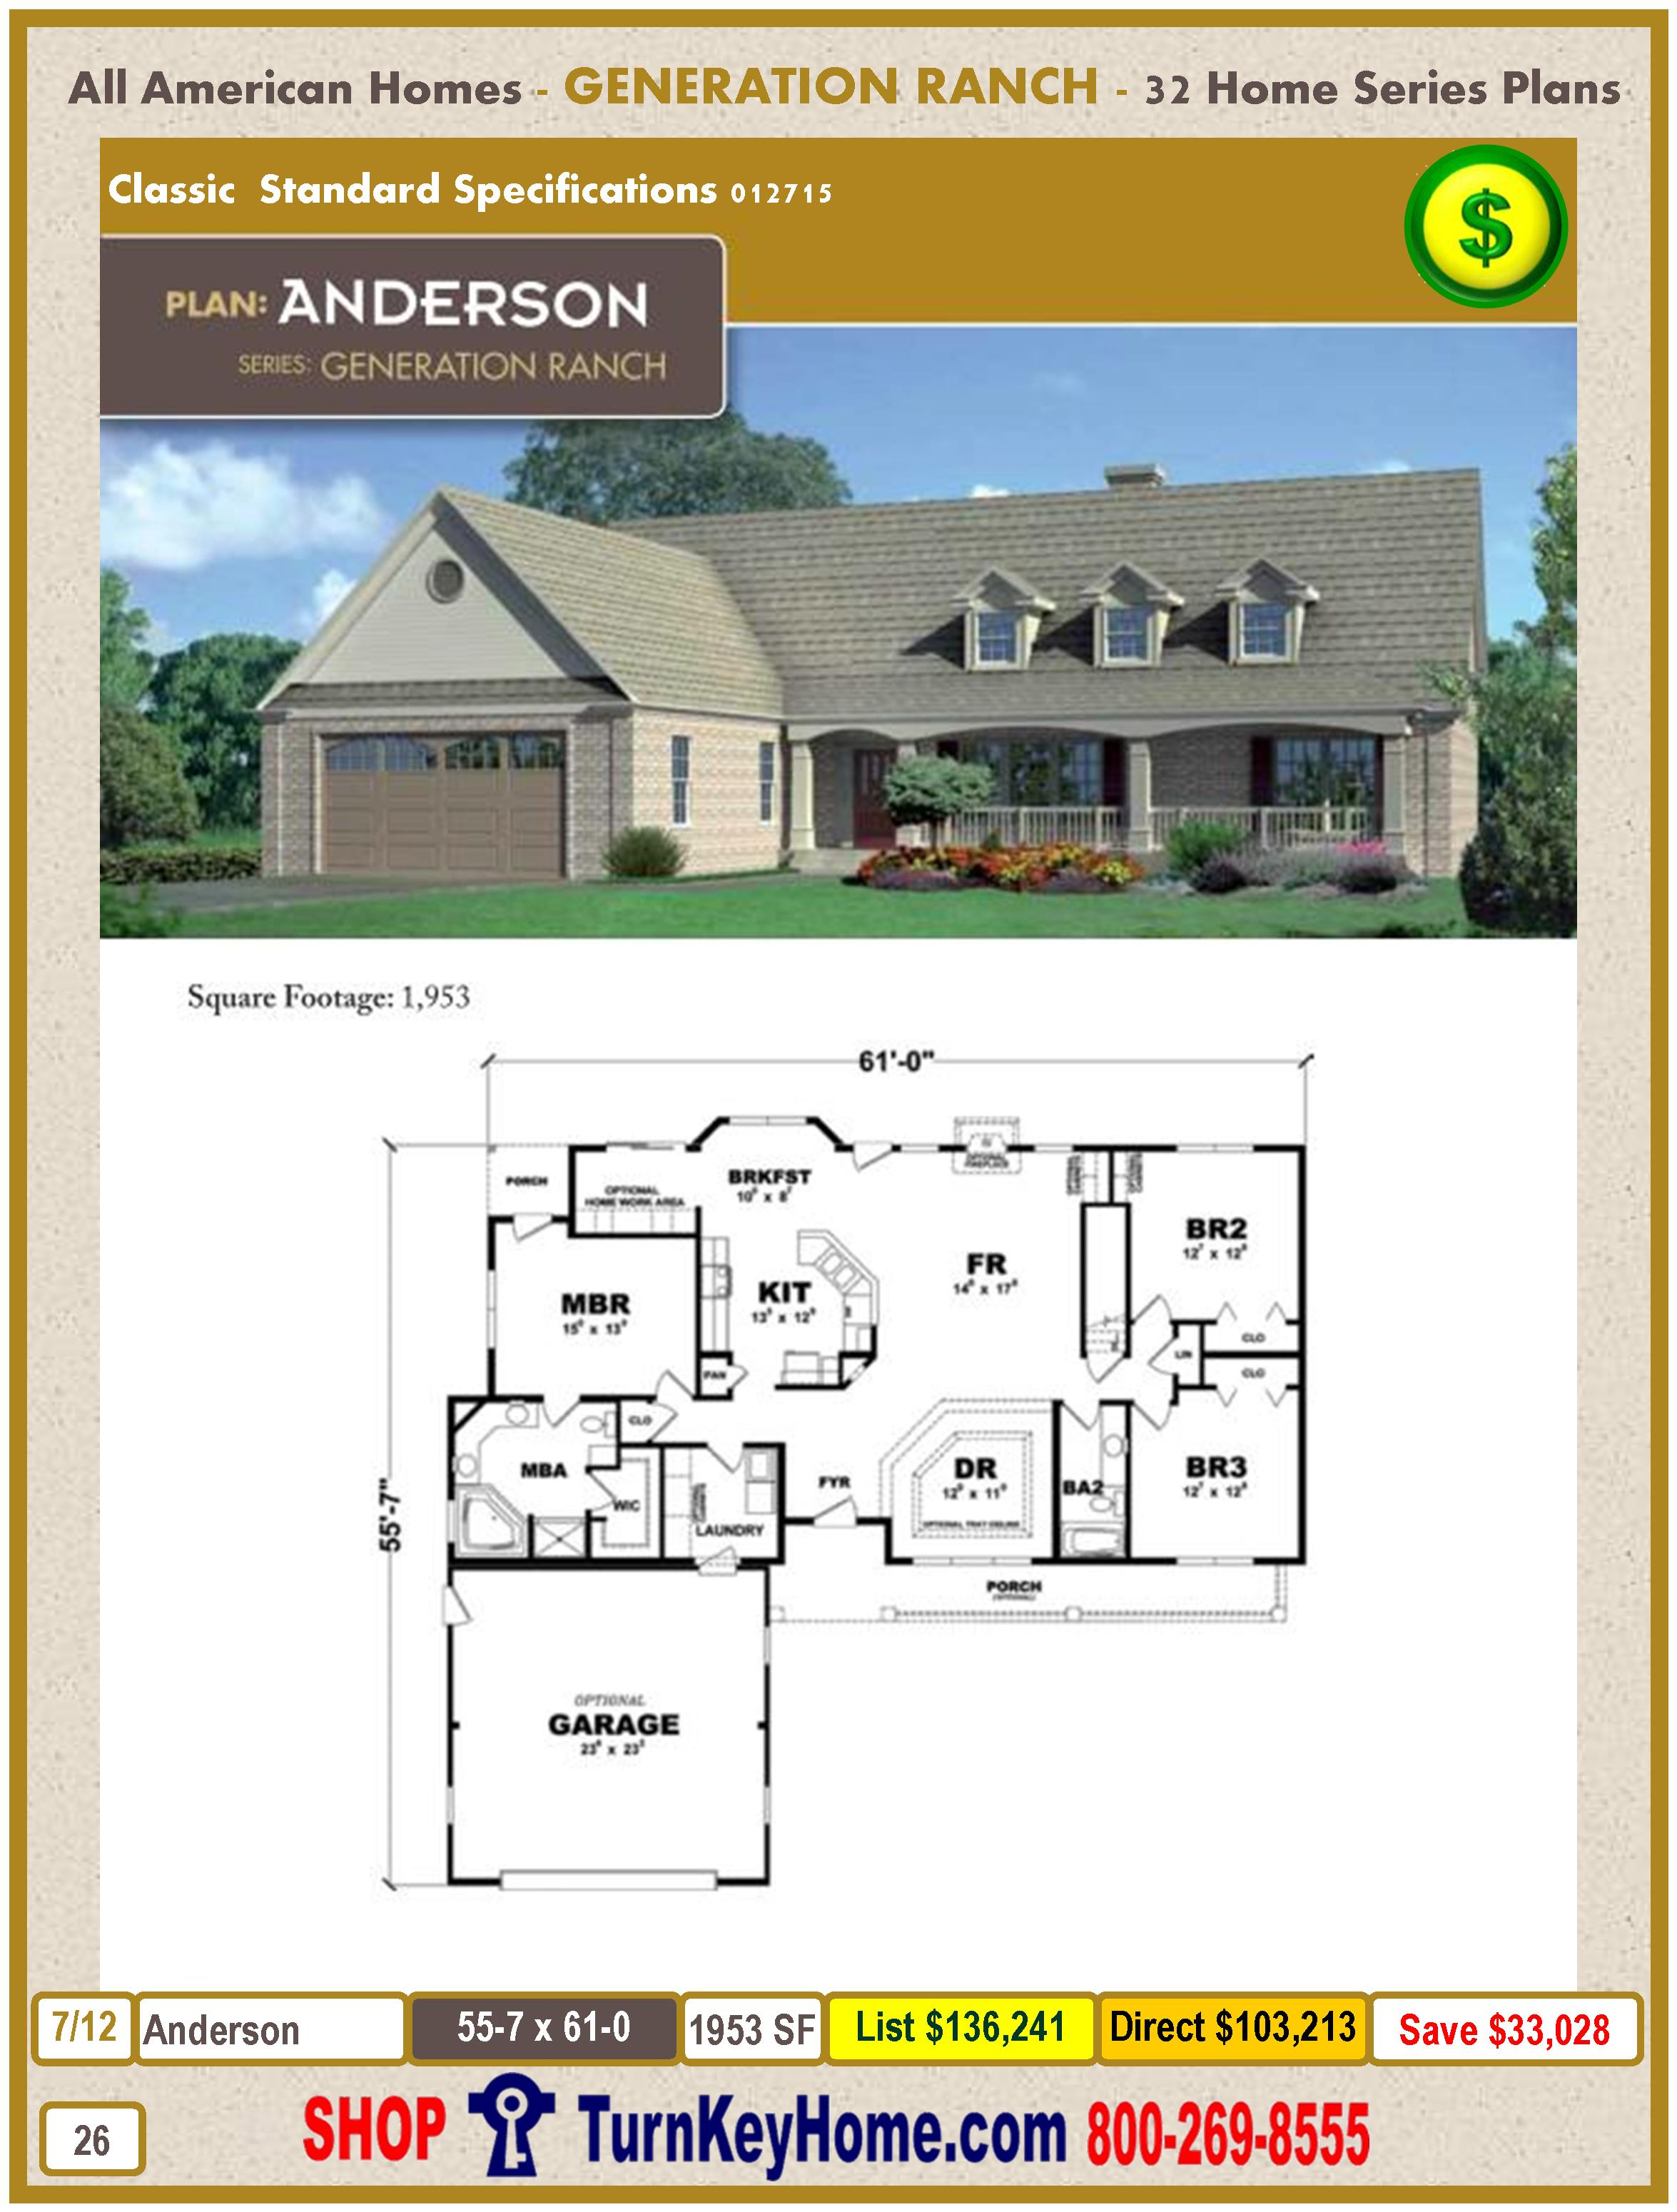 Pleasant Anderson Modular Home Ranch Plan Direct Priced From All American Inspirational Interior Design Netriciaus